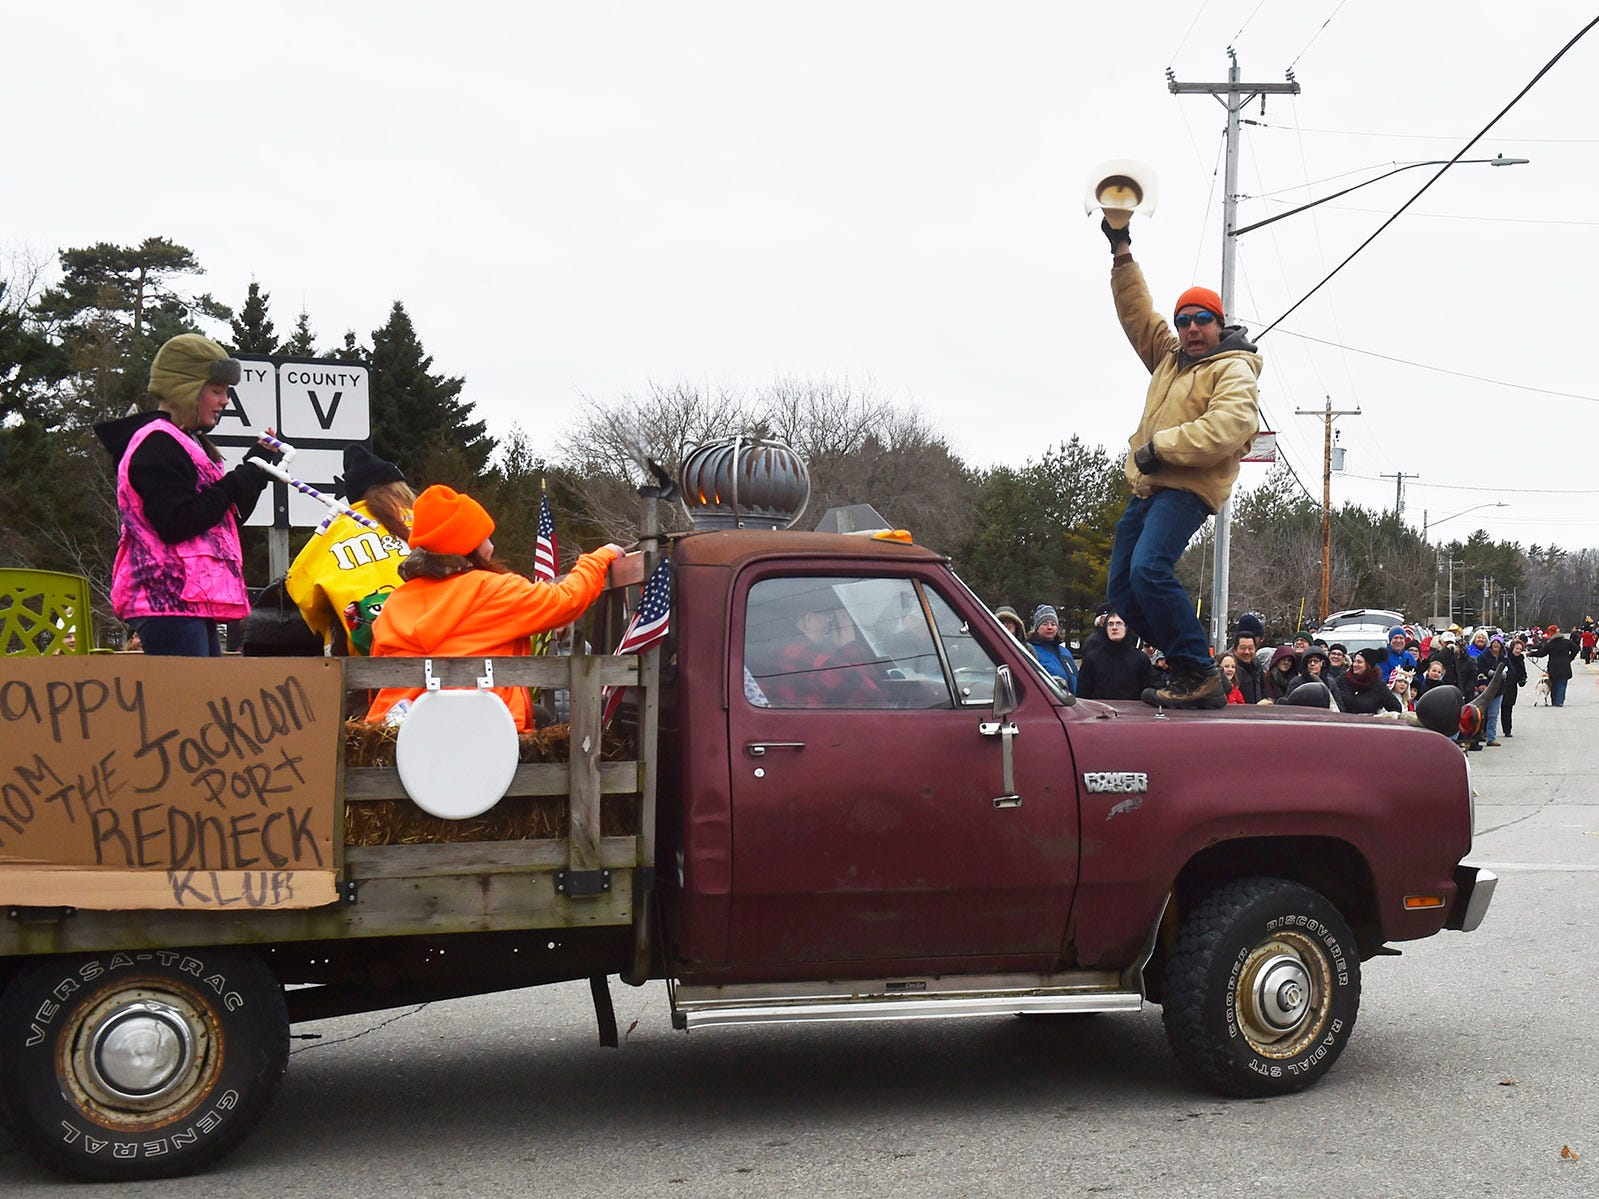 John Czajkowski of Wauwatosa/Jacksonport performing a crazy cowboy dance on the hood of vehicle pulling the Jacksonport Redneck Club float at the Thanksgiving Day Parade in Jacksonport on Thursday, Nov. 22, 2018. Tina M. Gohr/USA TODAY NETWORK-Wisconsin